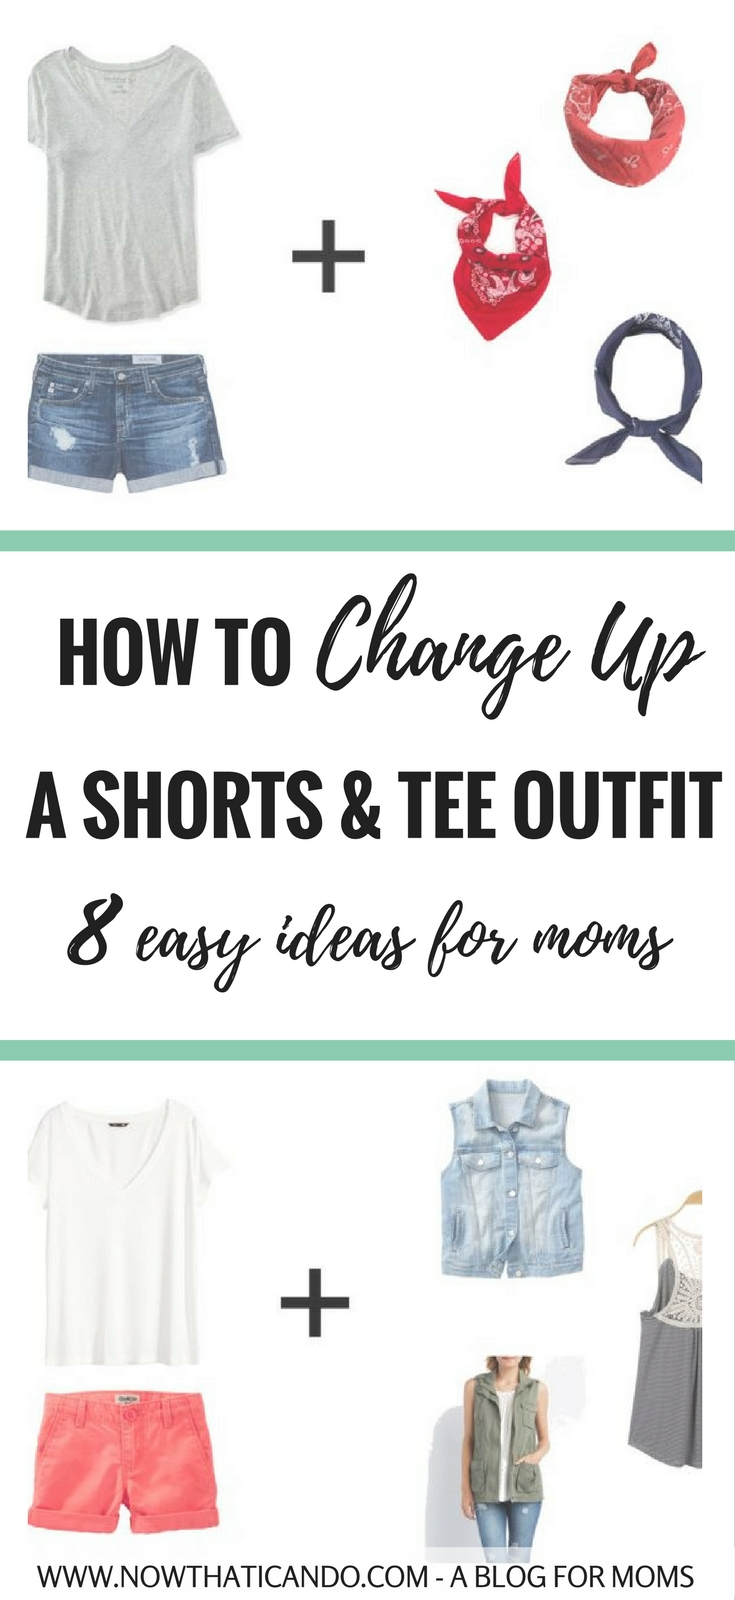 Do you find yourself living in shorts and a tee to stay cool during the summer? If you're bored of the same look over and over, click through for 8 ways to change it up without making you any warmer.